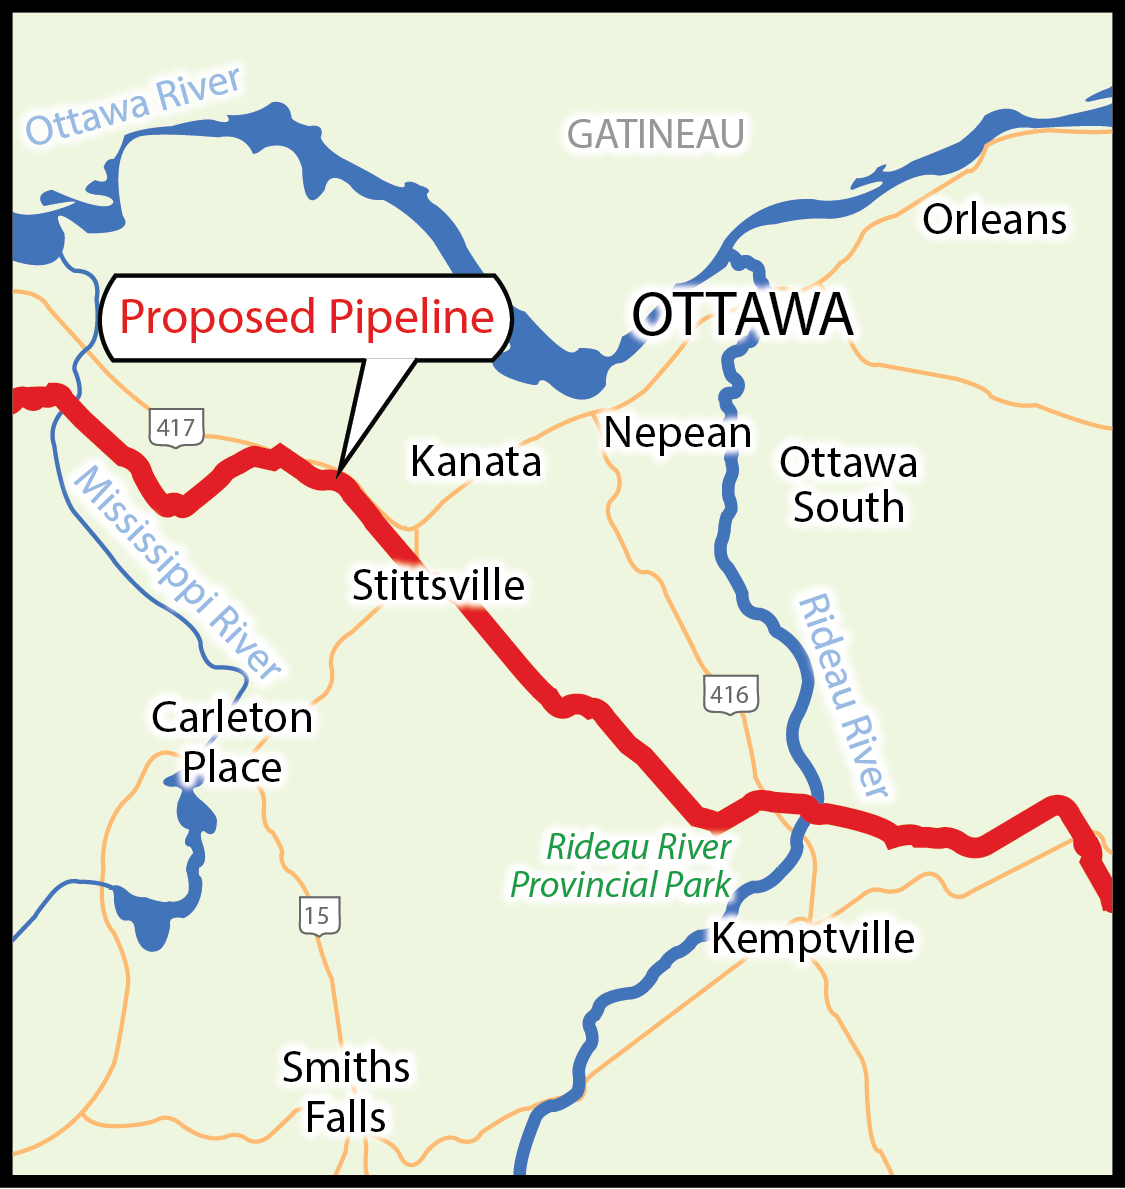 a tar sands pipeline in the city of ottawa ecology ottawa